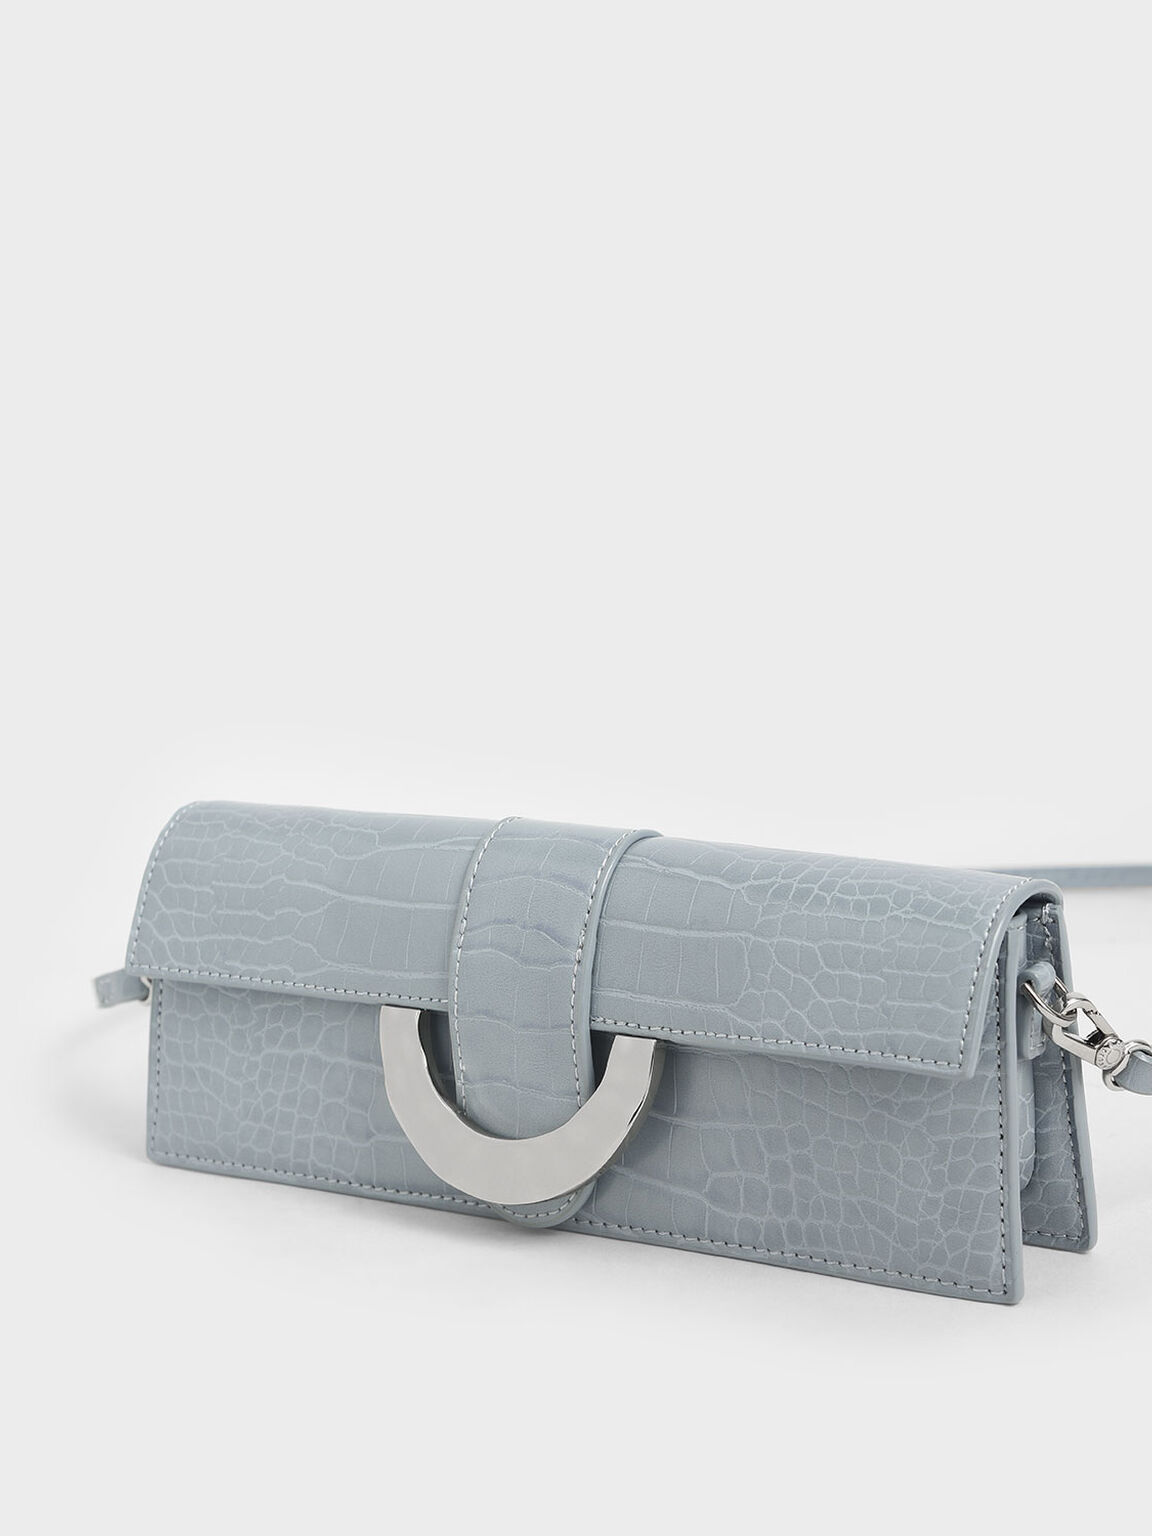 Croc-Effect Long Clutch, Blue, hi-res